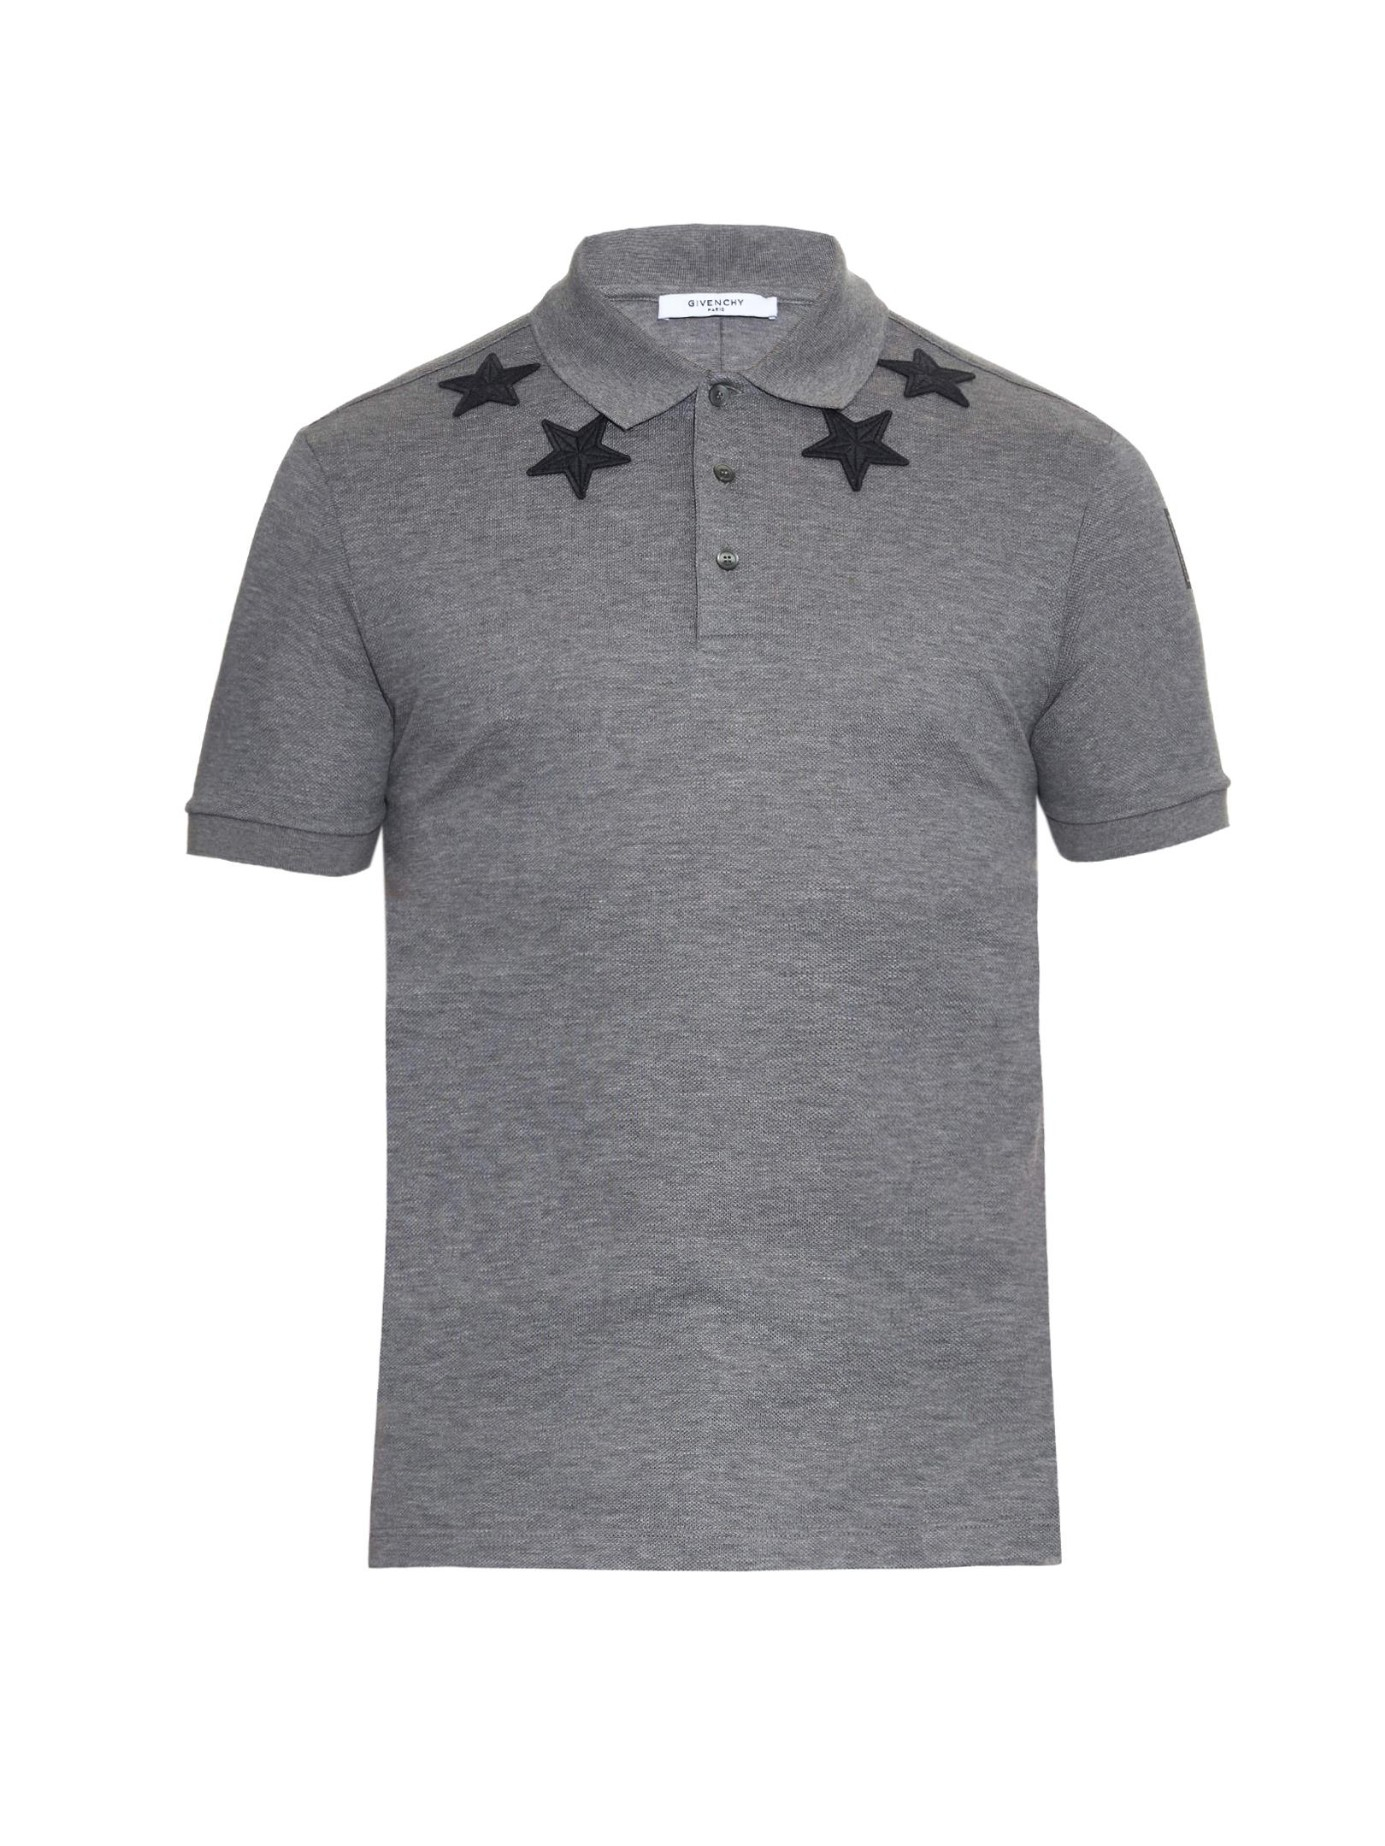 e67b3eea Givenchy Cuban-fit Star-embroidered Polo Shirt in Gray for Men - Lyst